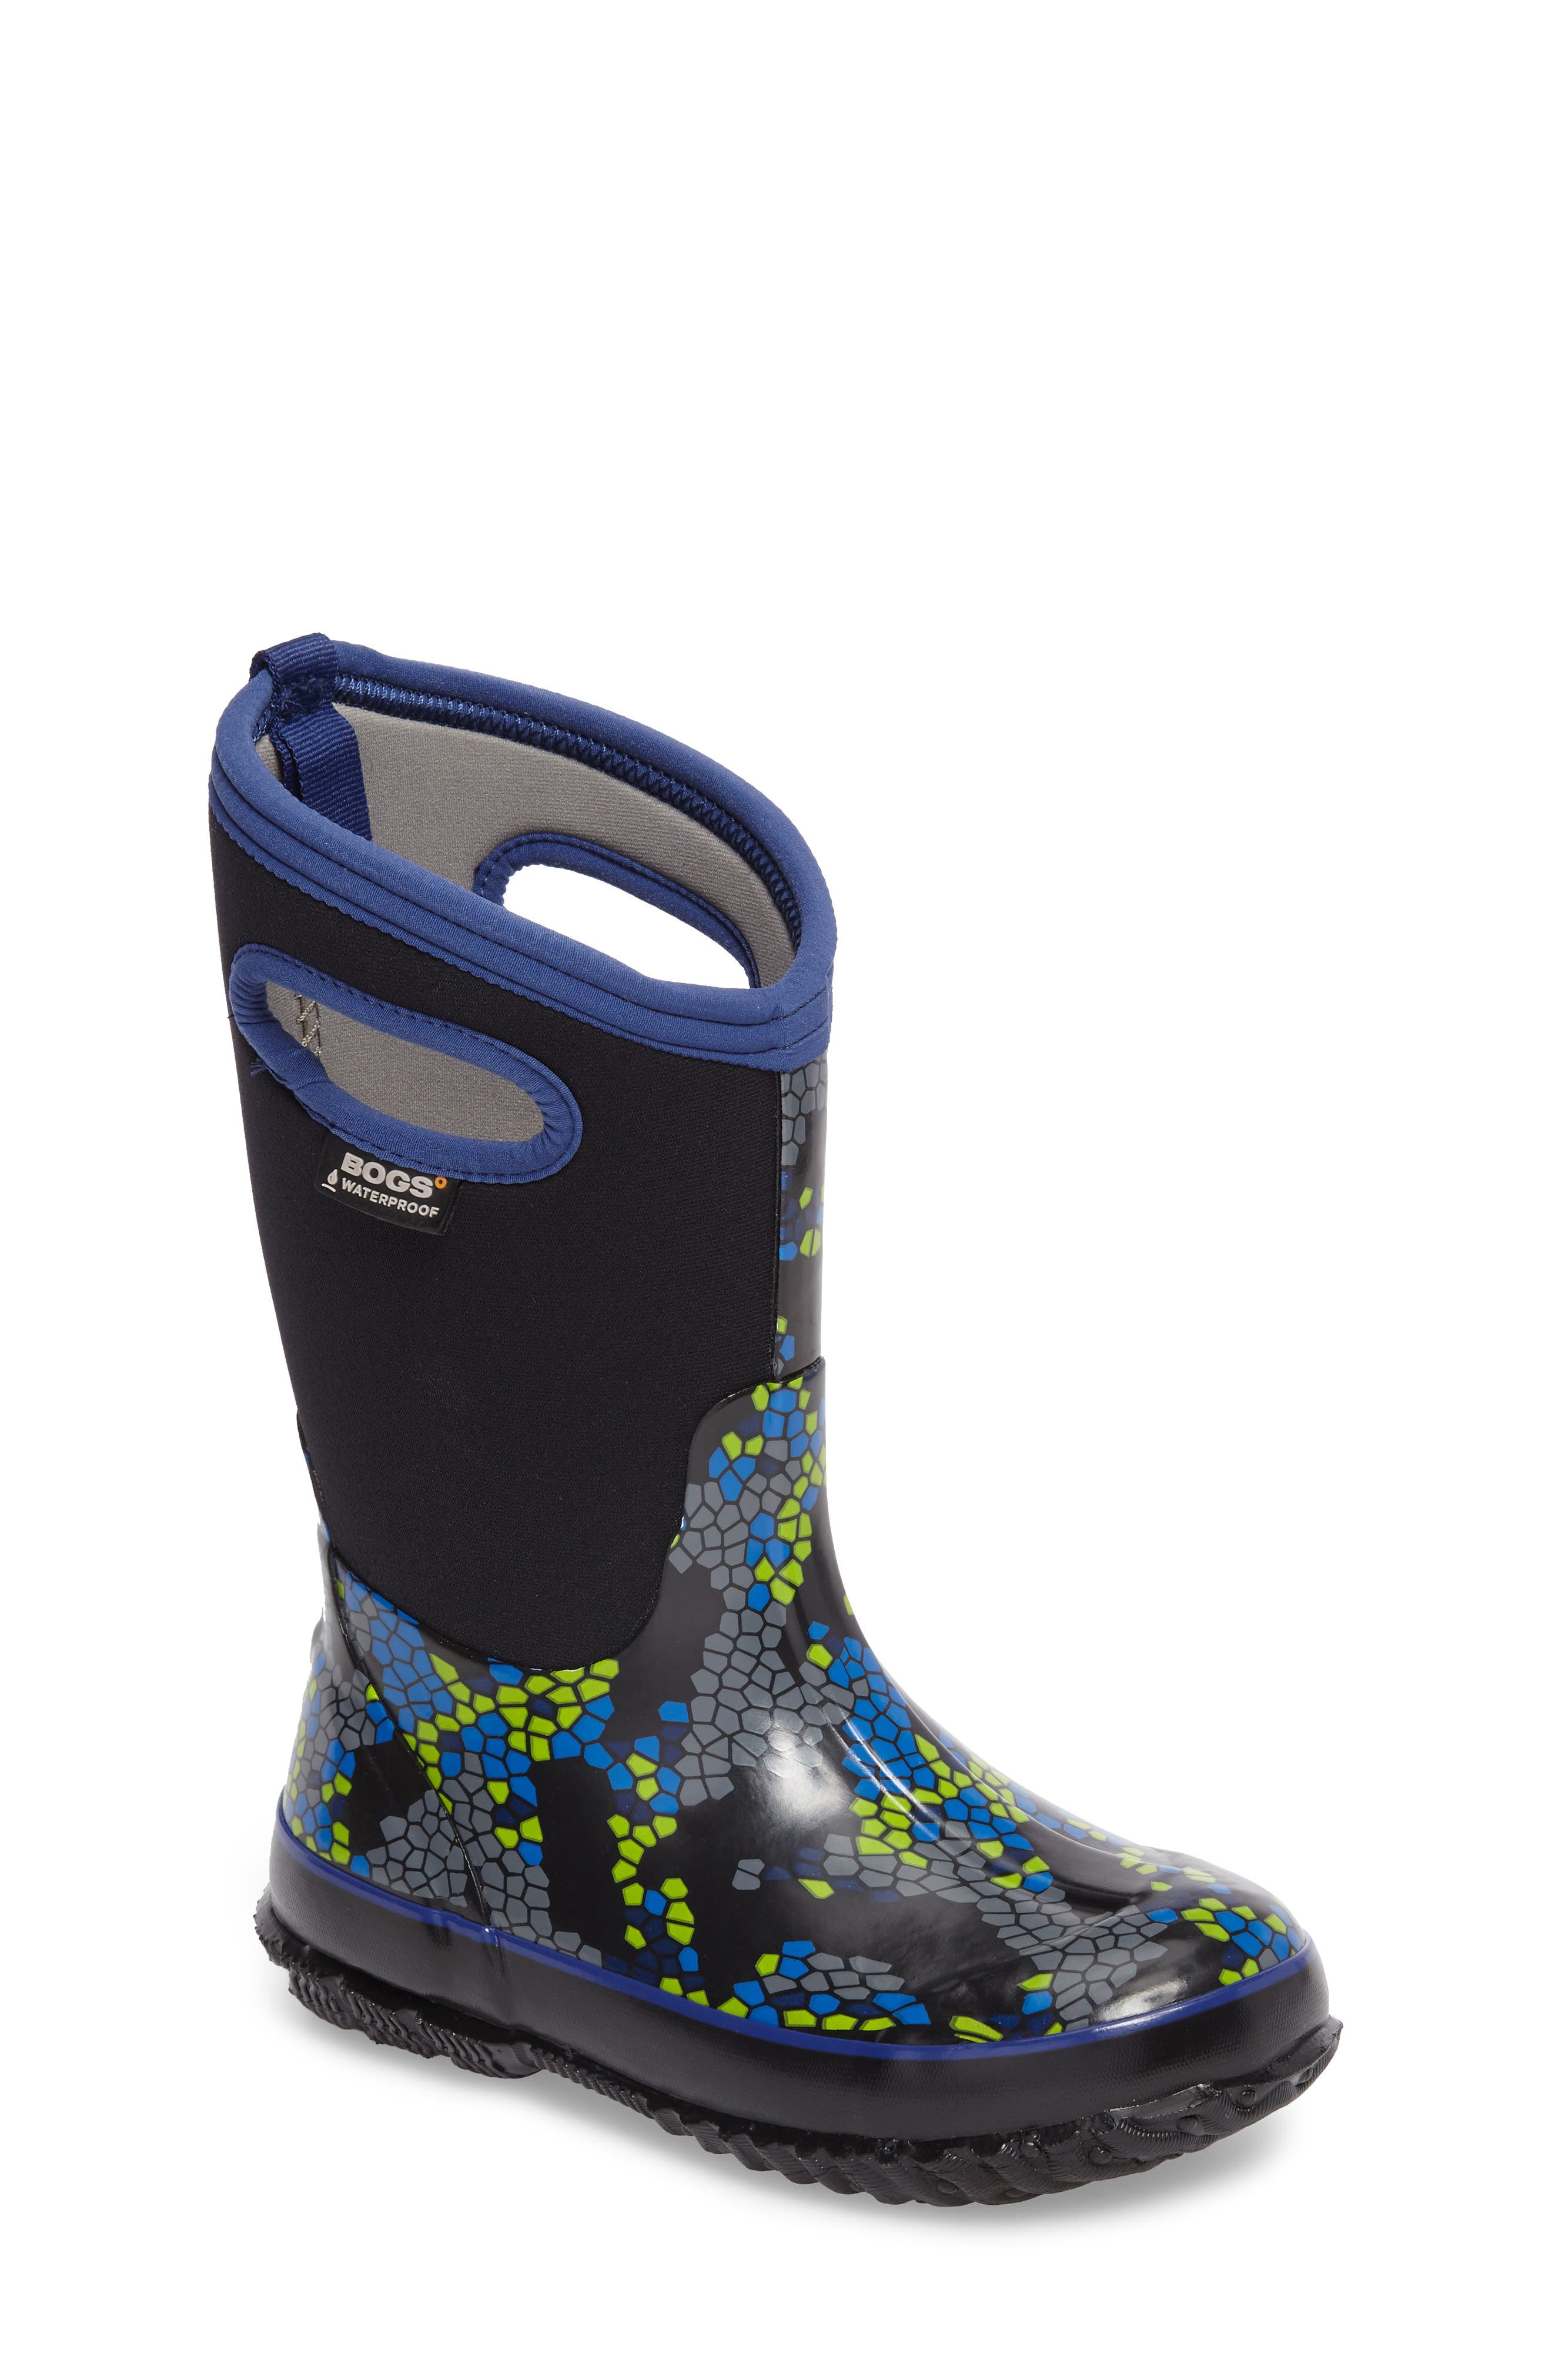 Bogs Classic Axel Insulated Waterproof Boot (Toddler, Little Kid & Big Kid)